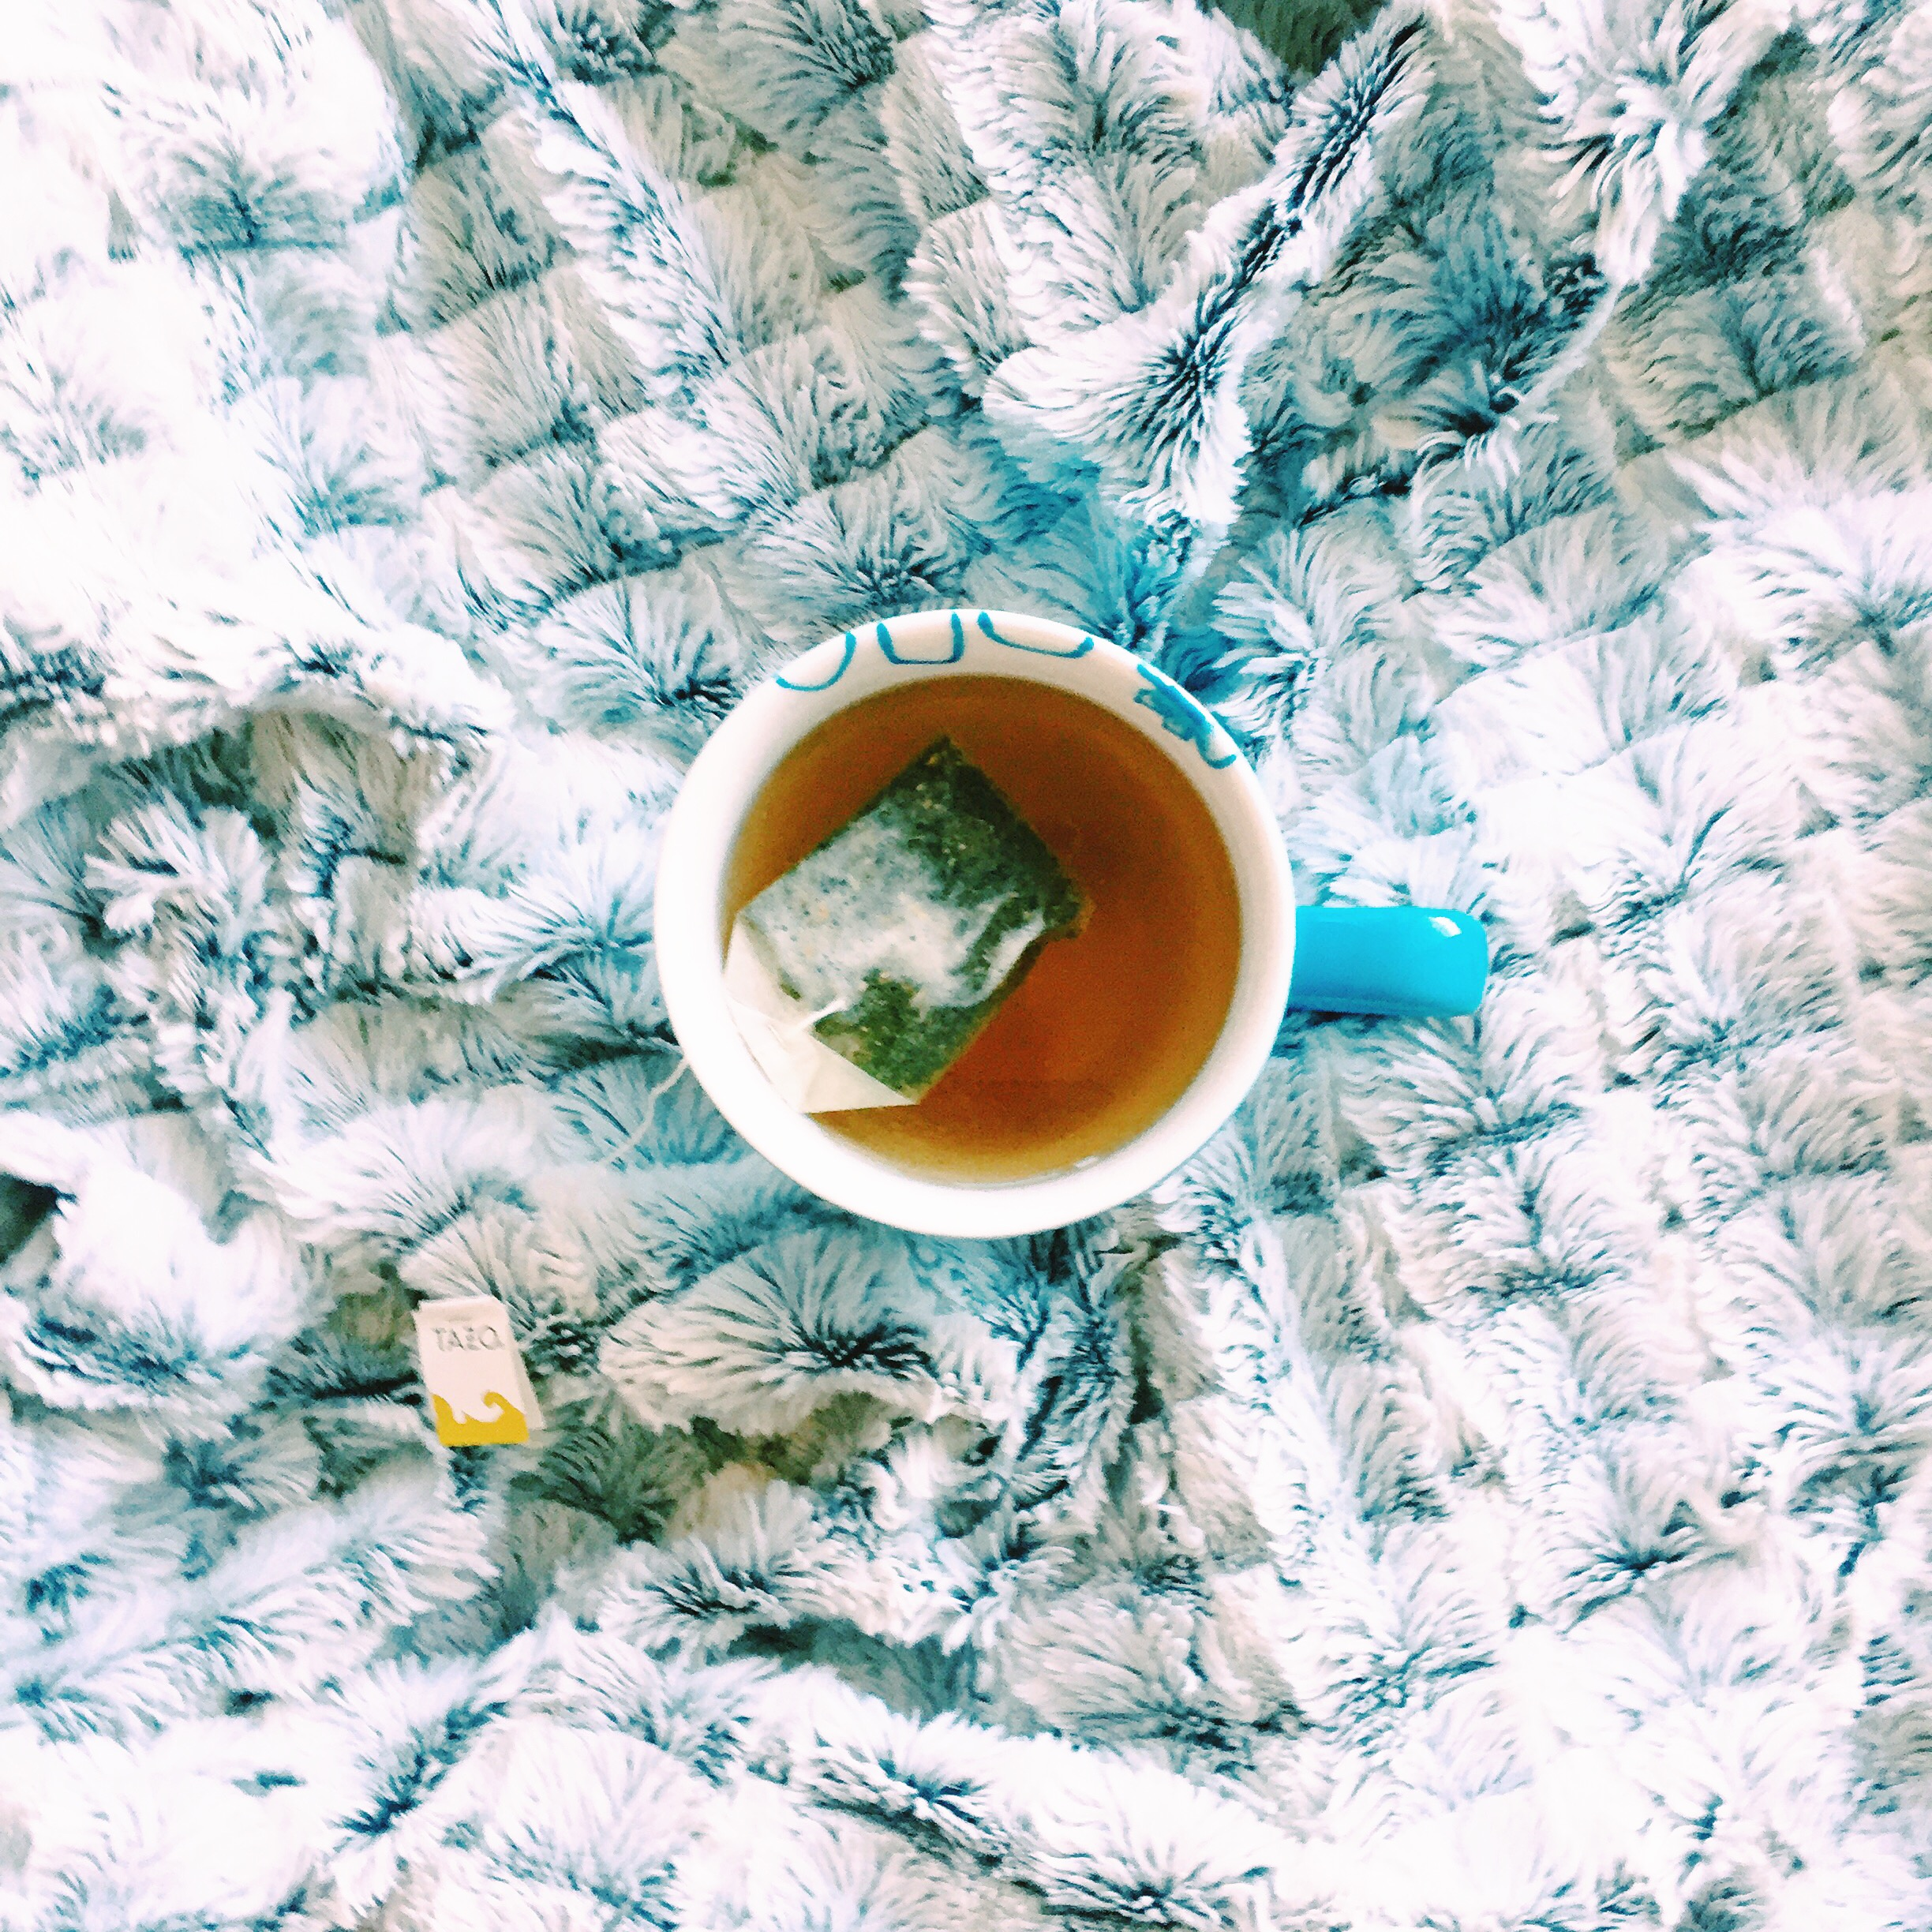 Adulting is Hard. No one tells you how tough sick days are as an adult. Tea time and netflix. — The Confused Millennial